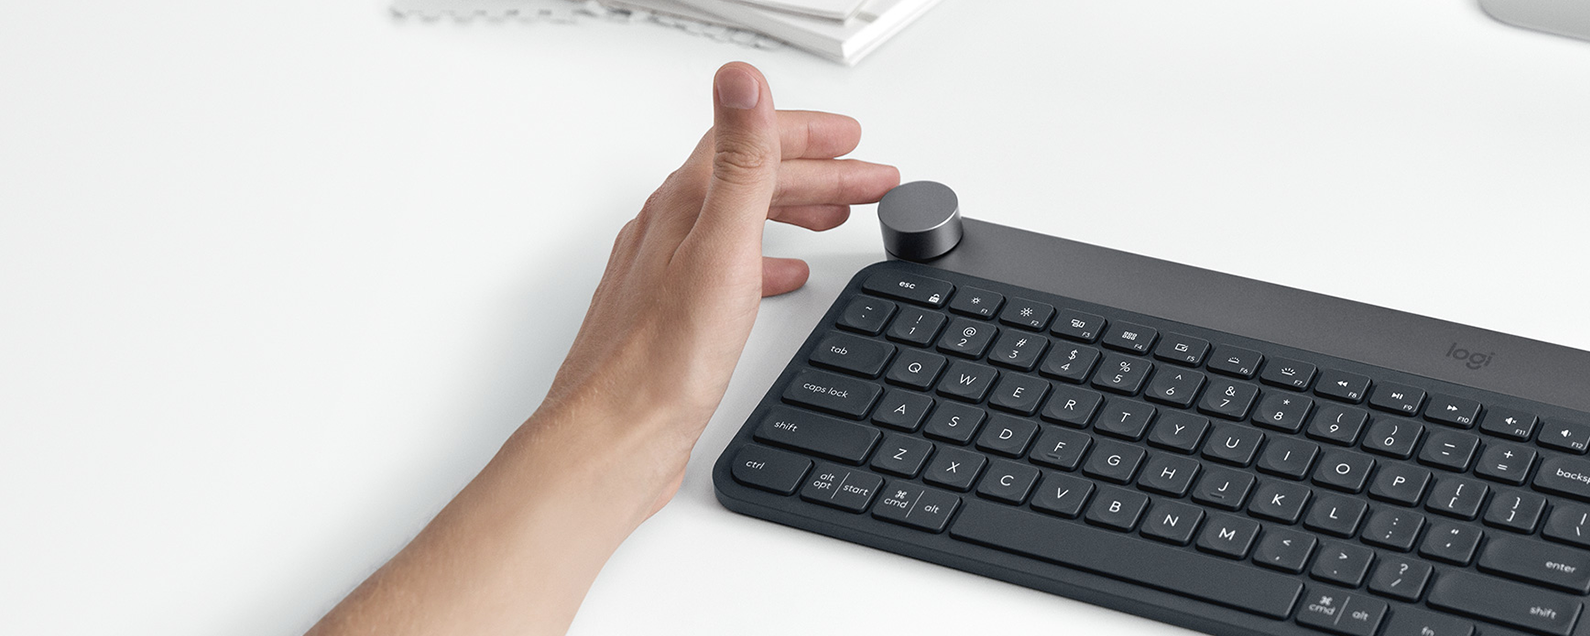 bluetooth keyboard for ios creative keyboard adapts to apps. Black Bedroom Furniture Sets. Home Design Ideas